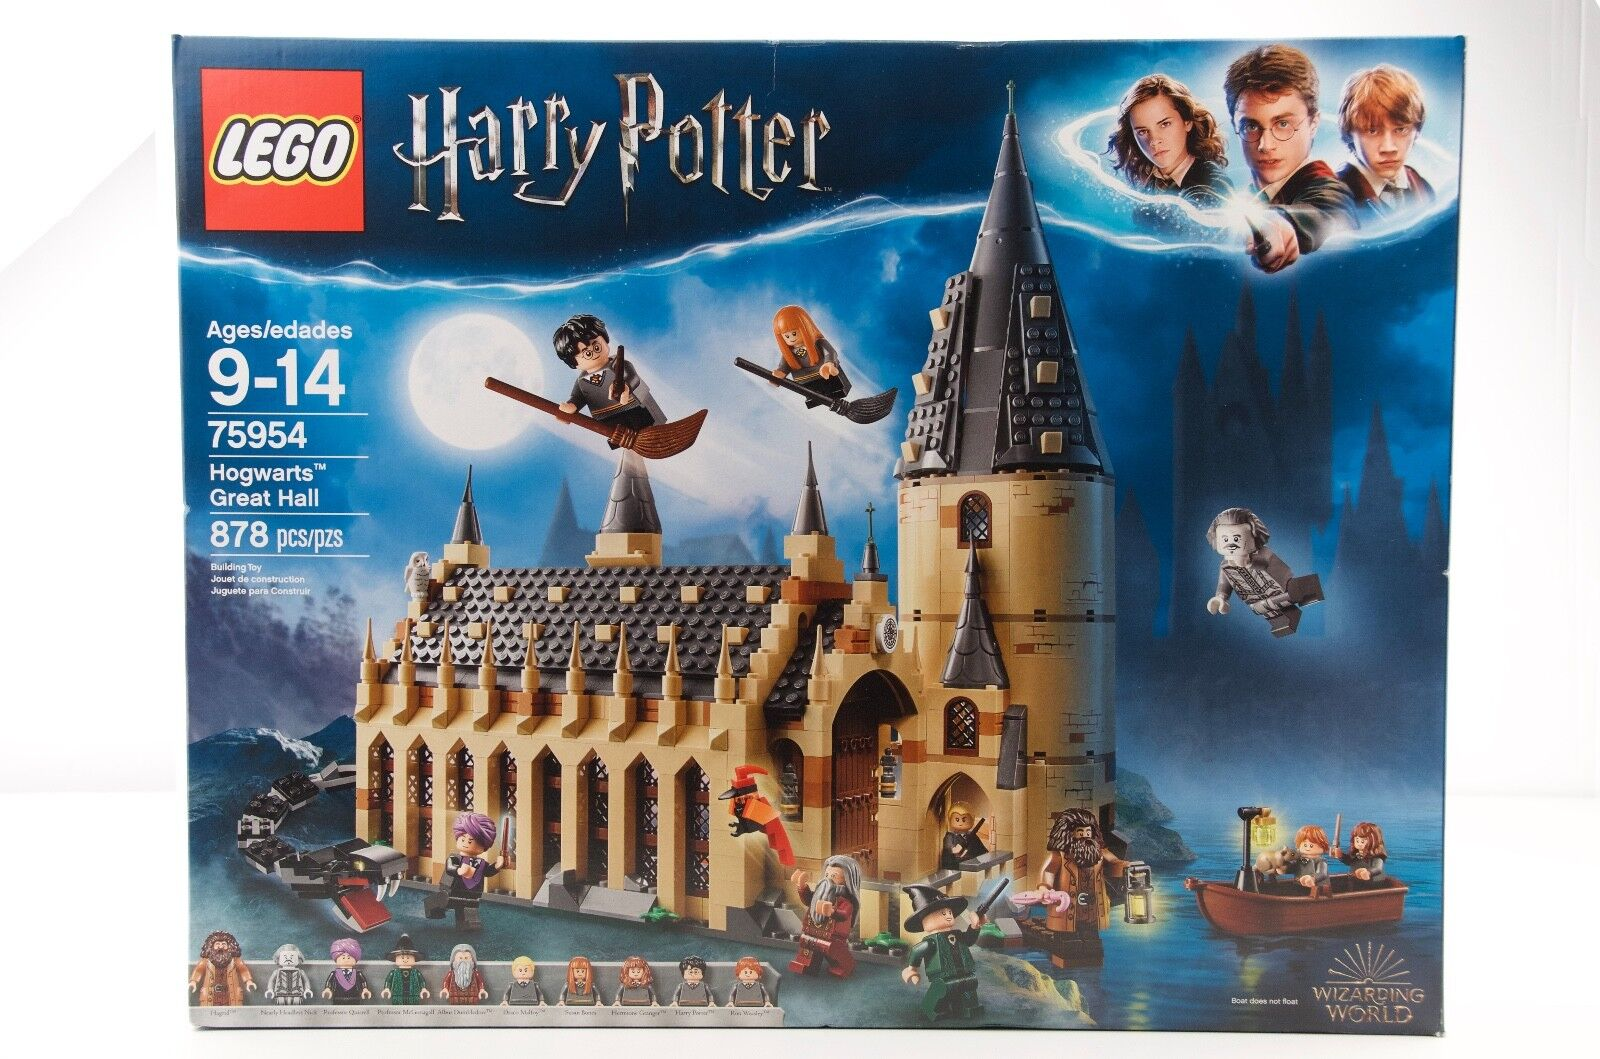 Lego, HARRY POTTER, 75954, Hogwarts Great Hall, 878  PCS, Ages 9 & Up, NIB  vente pas cher